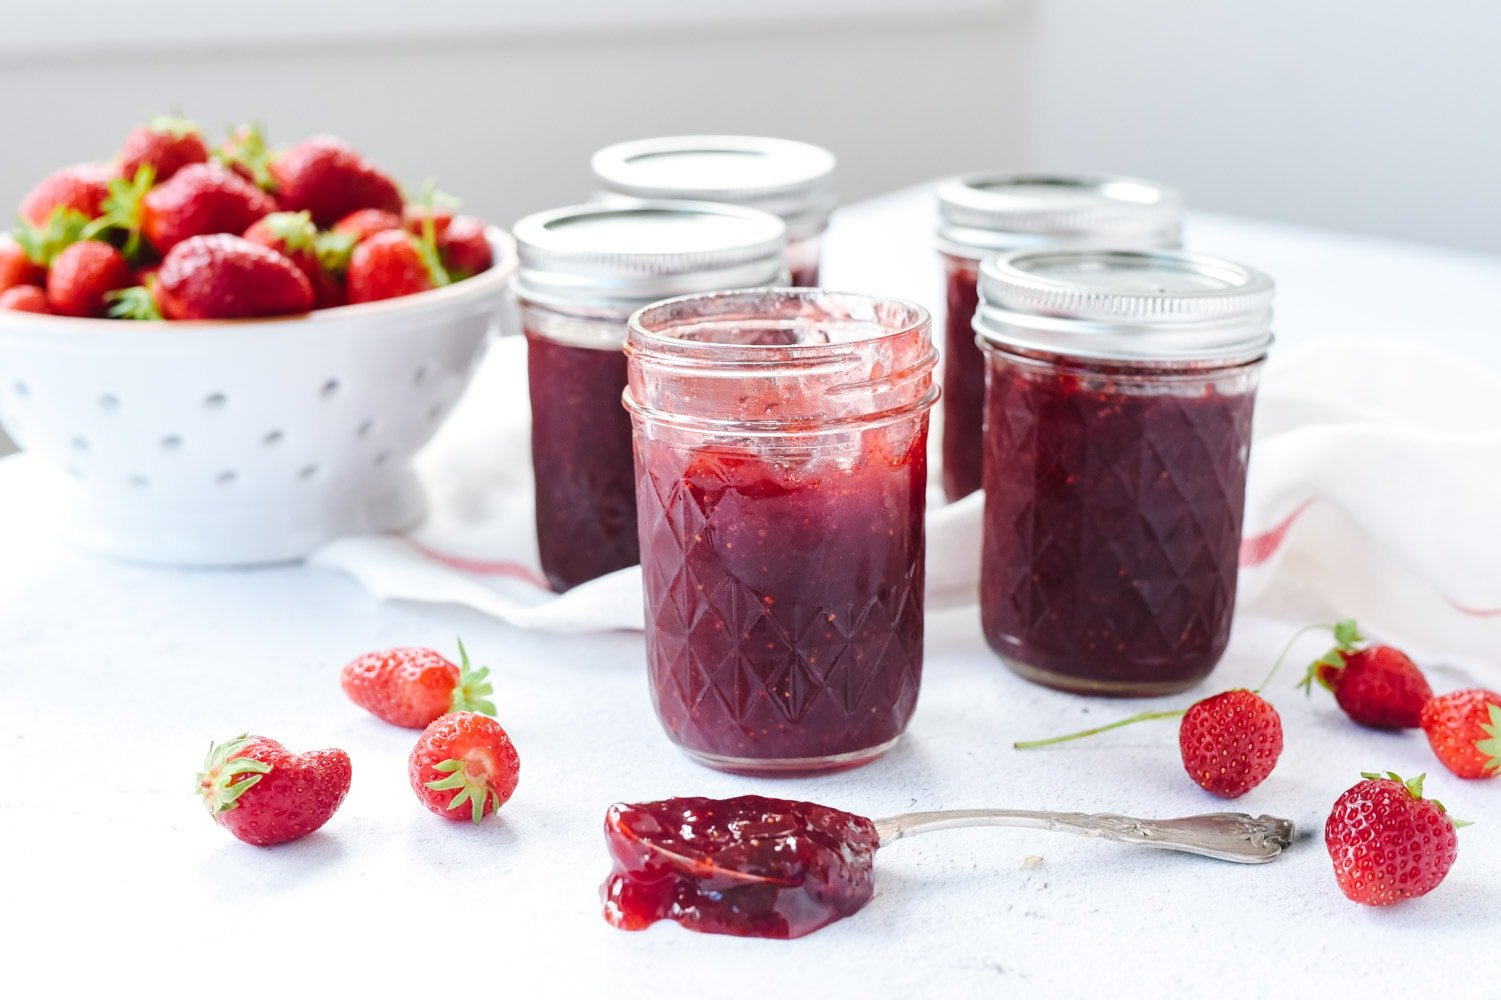 Strawberry jam without pectin